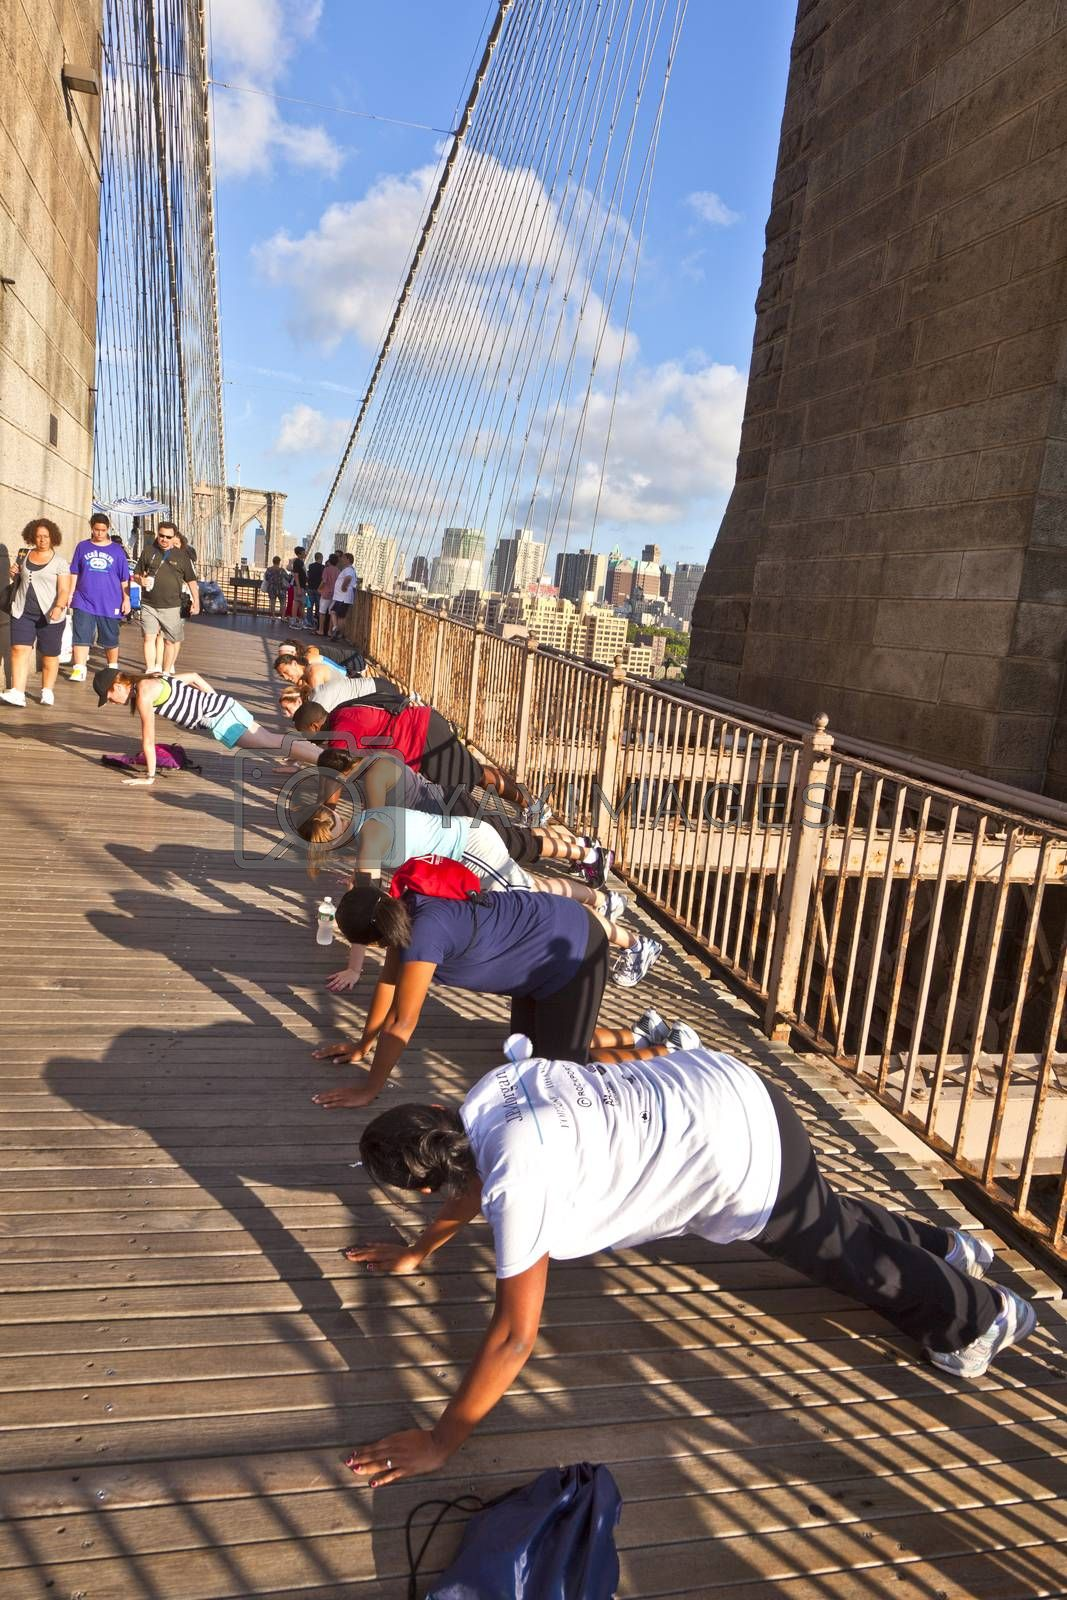 NEW YORK, USA - JULY 9, 2010: people exercise push-up at Brooklyn bridge in New York, USA. Brooklyn Bridge was constructed under Roeblings 1840 patent for the in-situ spinning of wire rope.